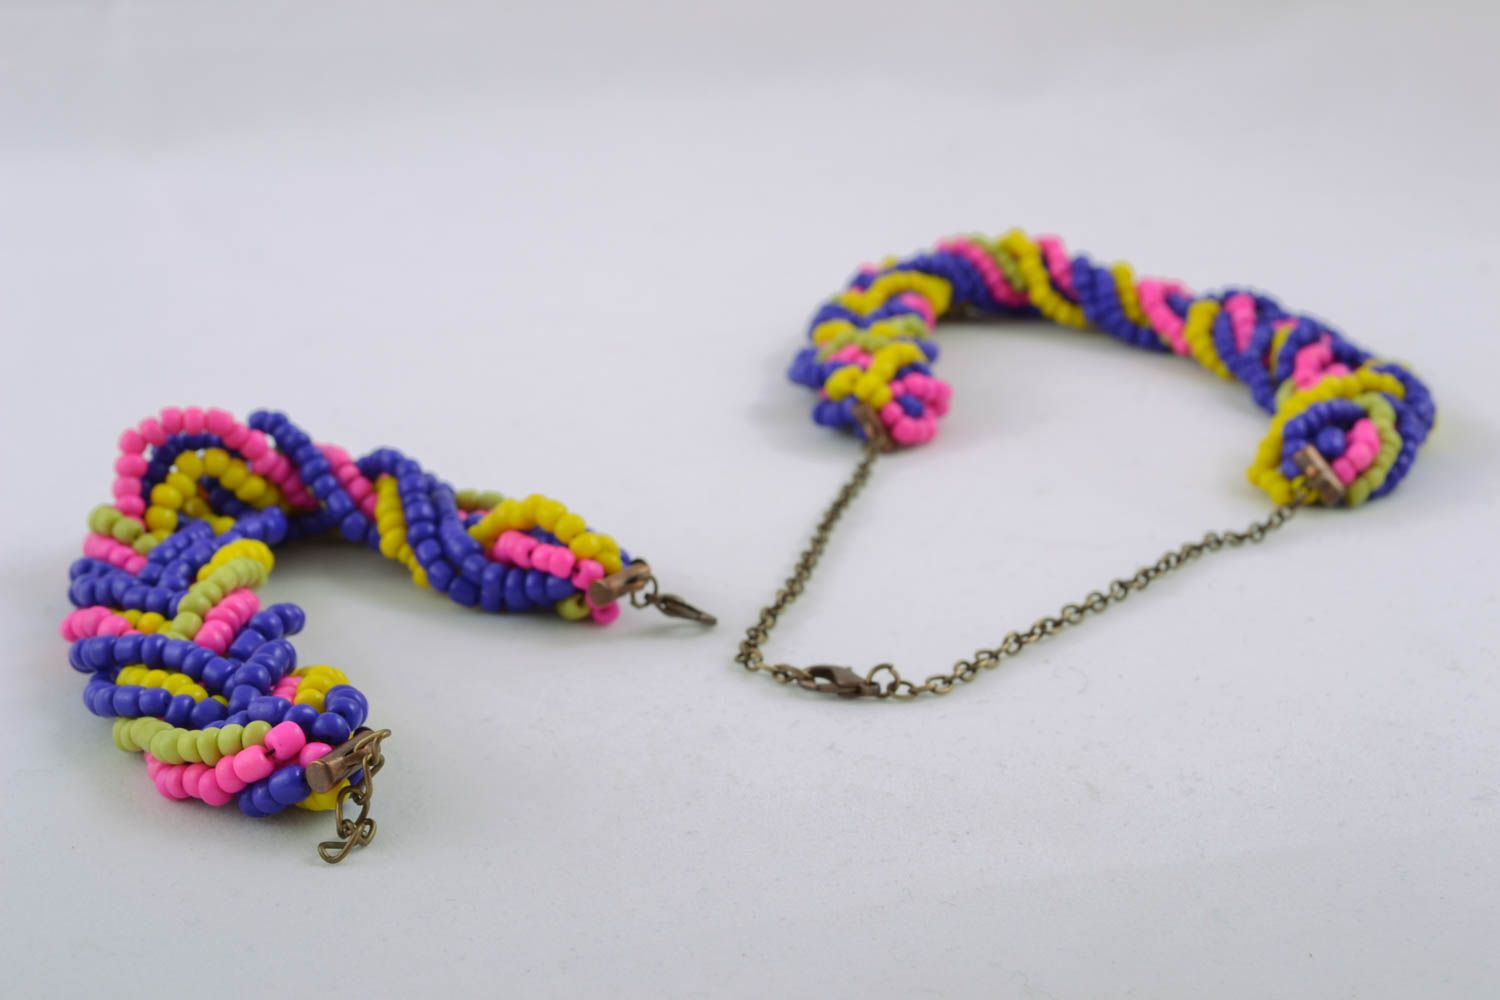 Handmade beaded jewelry set photo 3